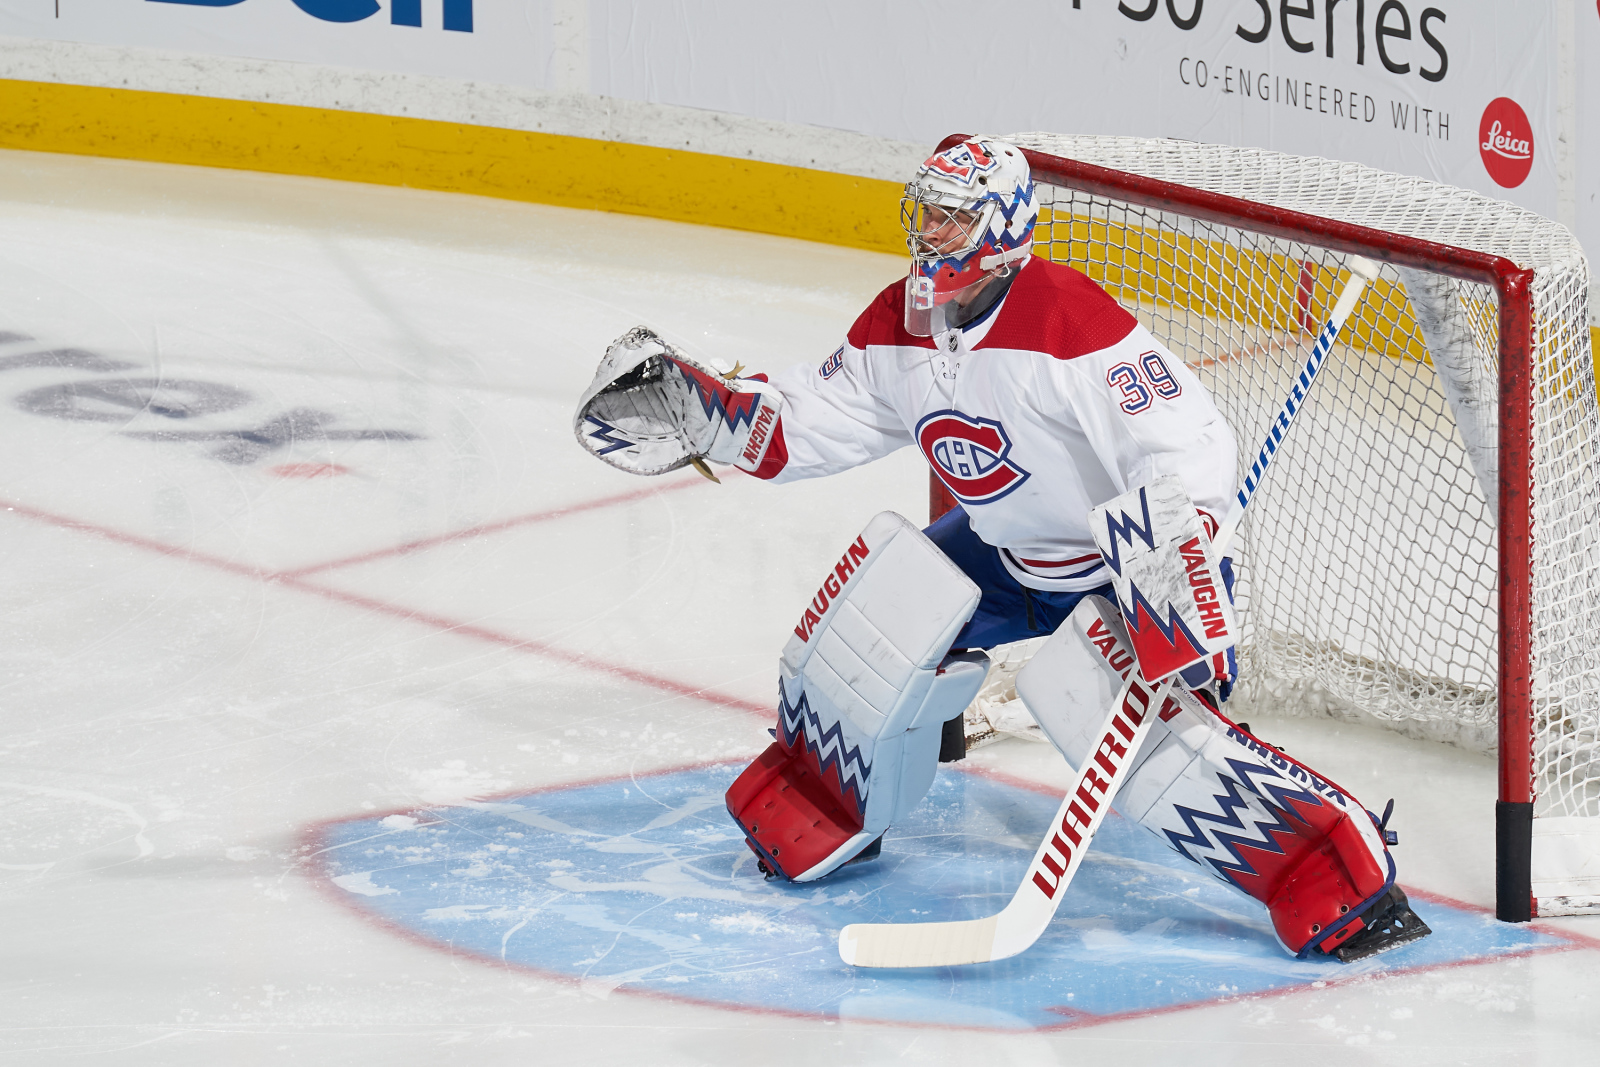 Montreal Canadiens: Can Charlie Lindgren backup Carey Price full time?